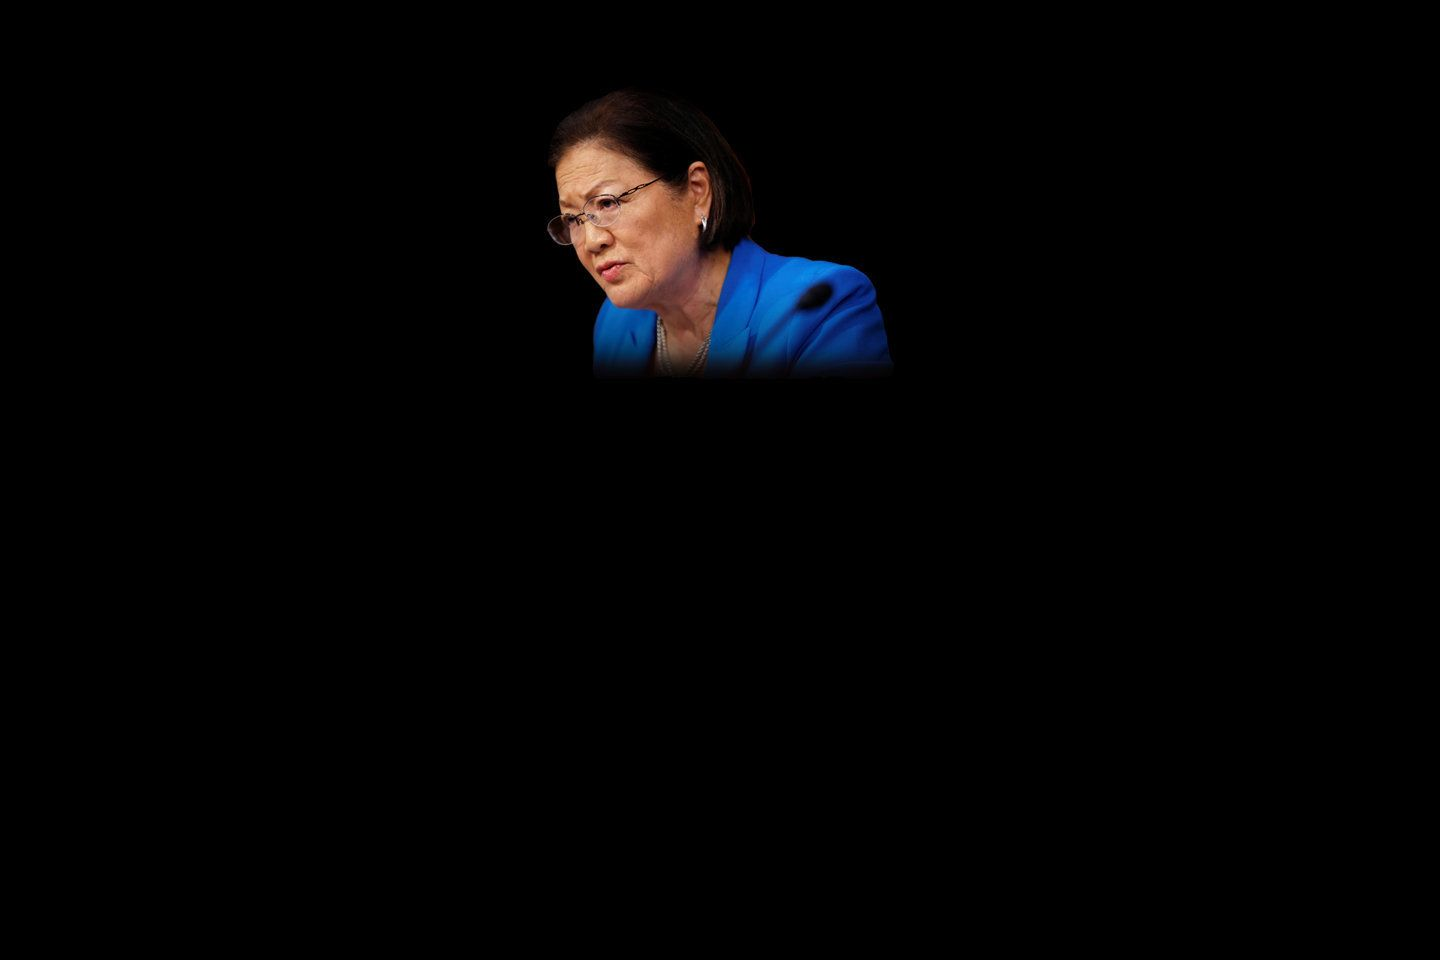 Mazie Hirono Is Grilling Nominees On Sexual Harassment. Brett Kavanaugh Is Next.